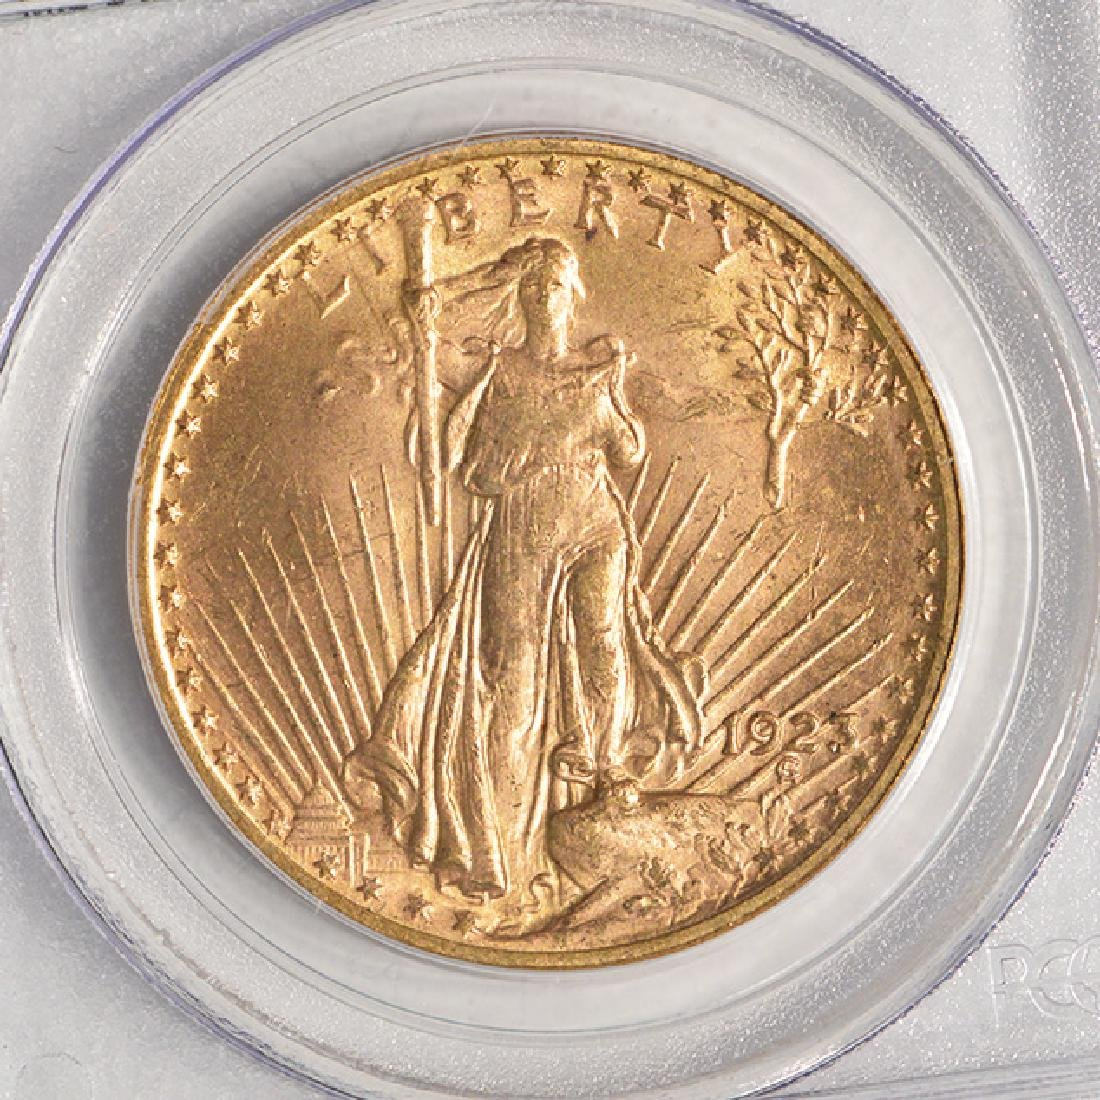 1923 $20 St Gaudens Double Eagle Gold Coin PCGS MS63 - 3